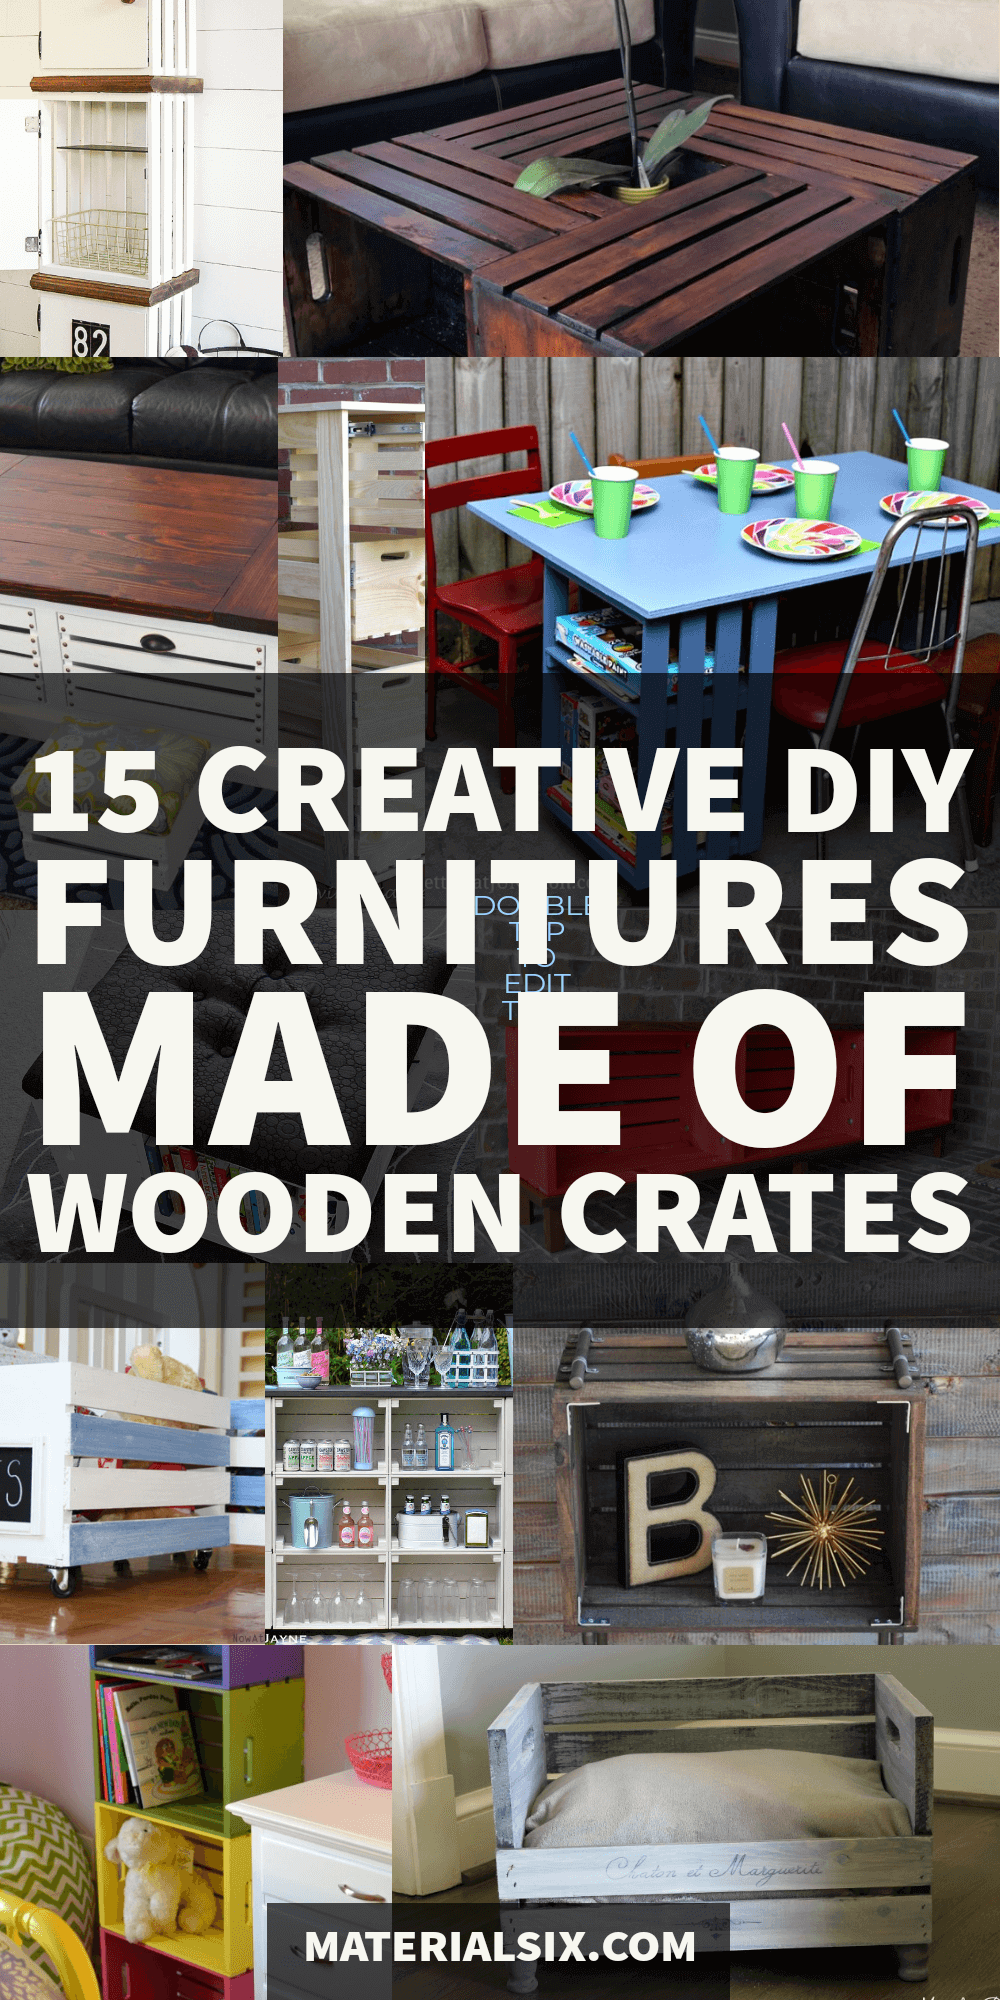 15 Creative DIY Wooden Crate Furniture Projects